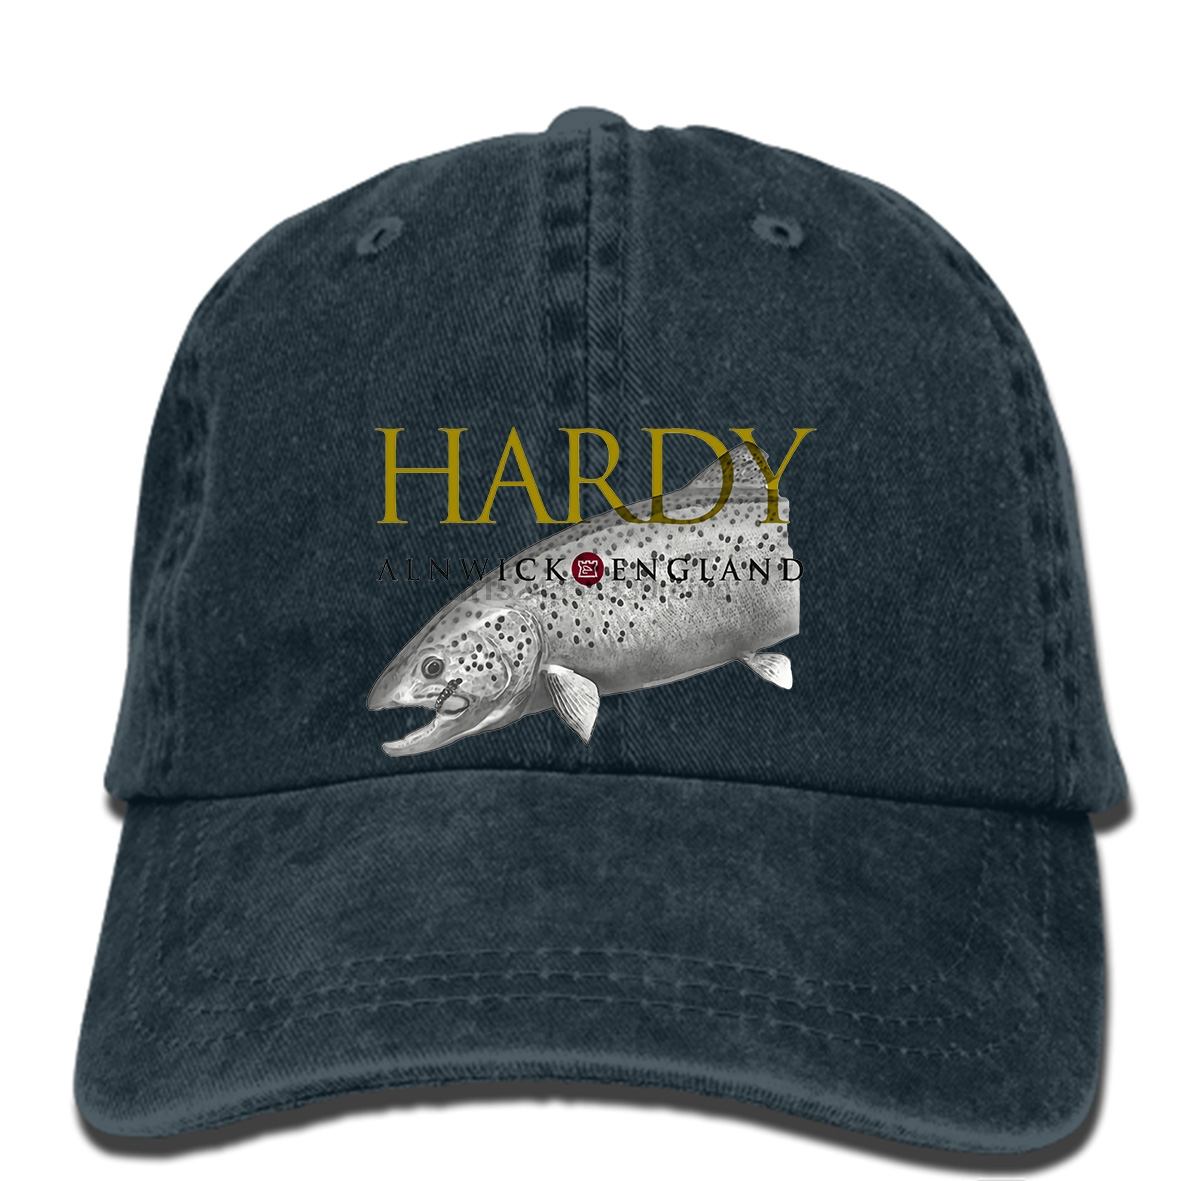 3e9d3b487fb77 Detail Feedback Questions about hip hop Baseball caps HARDY Brown Trout Fly  fishinger cap (various Sizes Available) Summer Style Hip Hop Men hat  Breathable ...